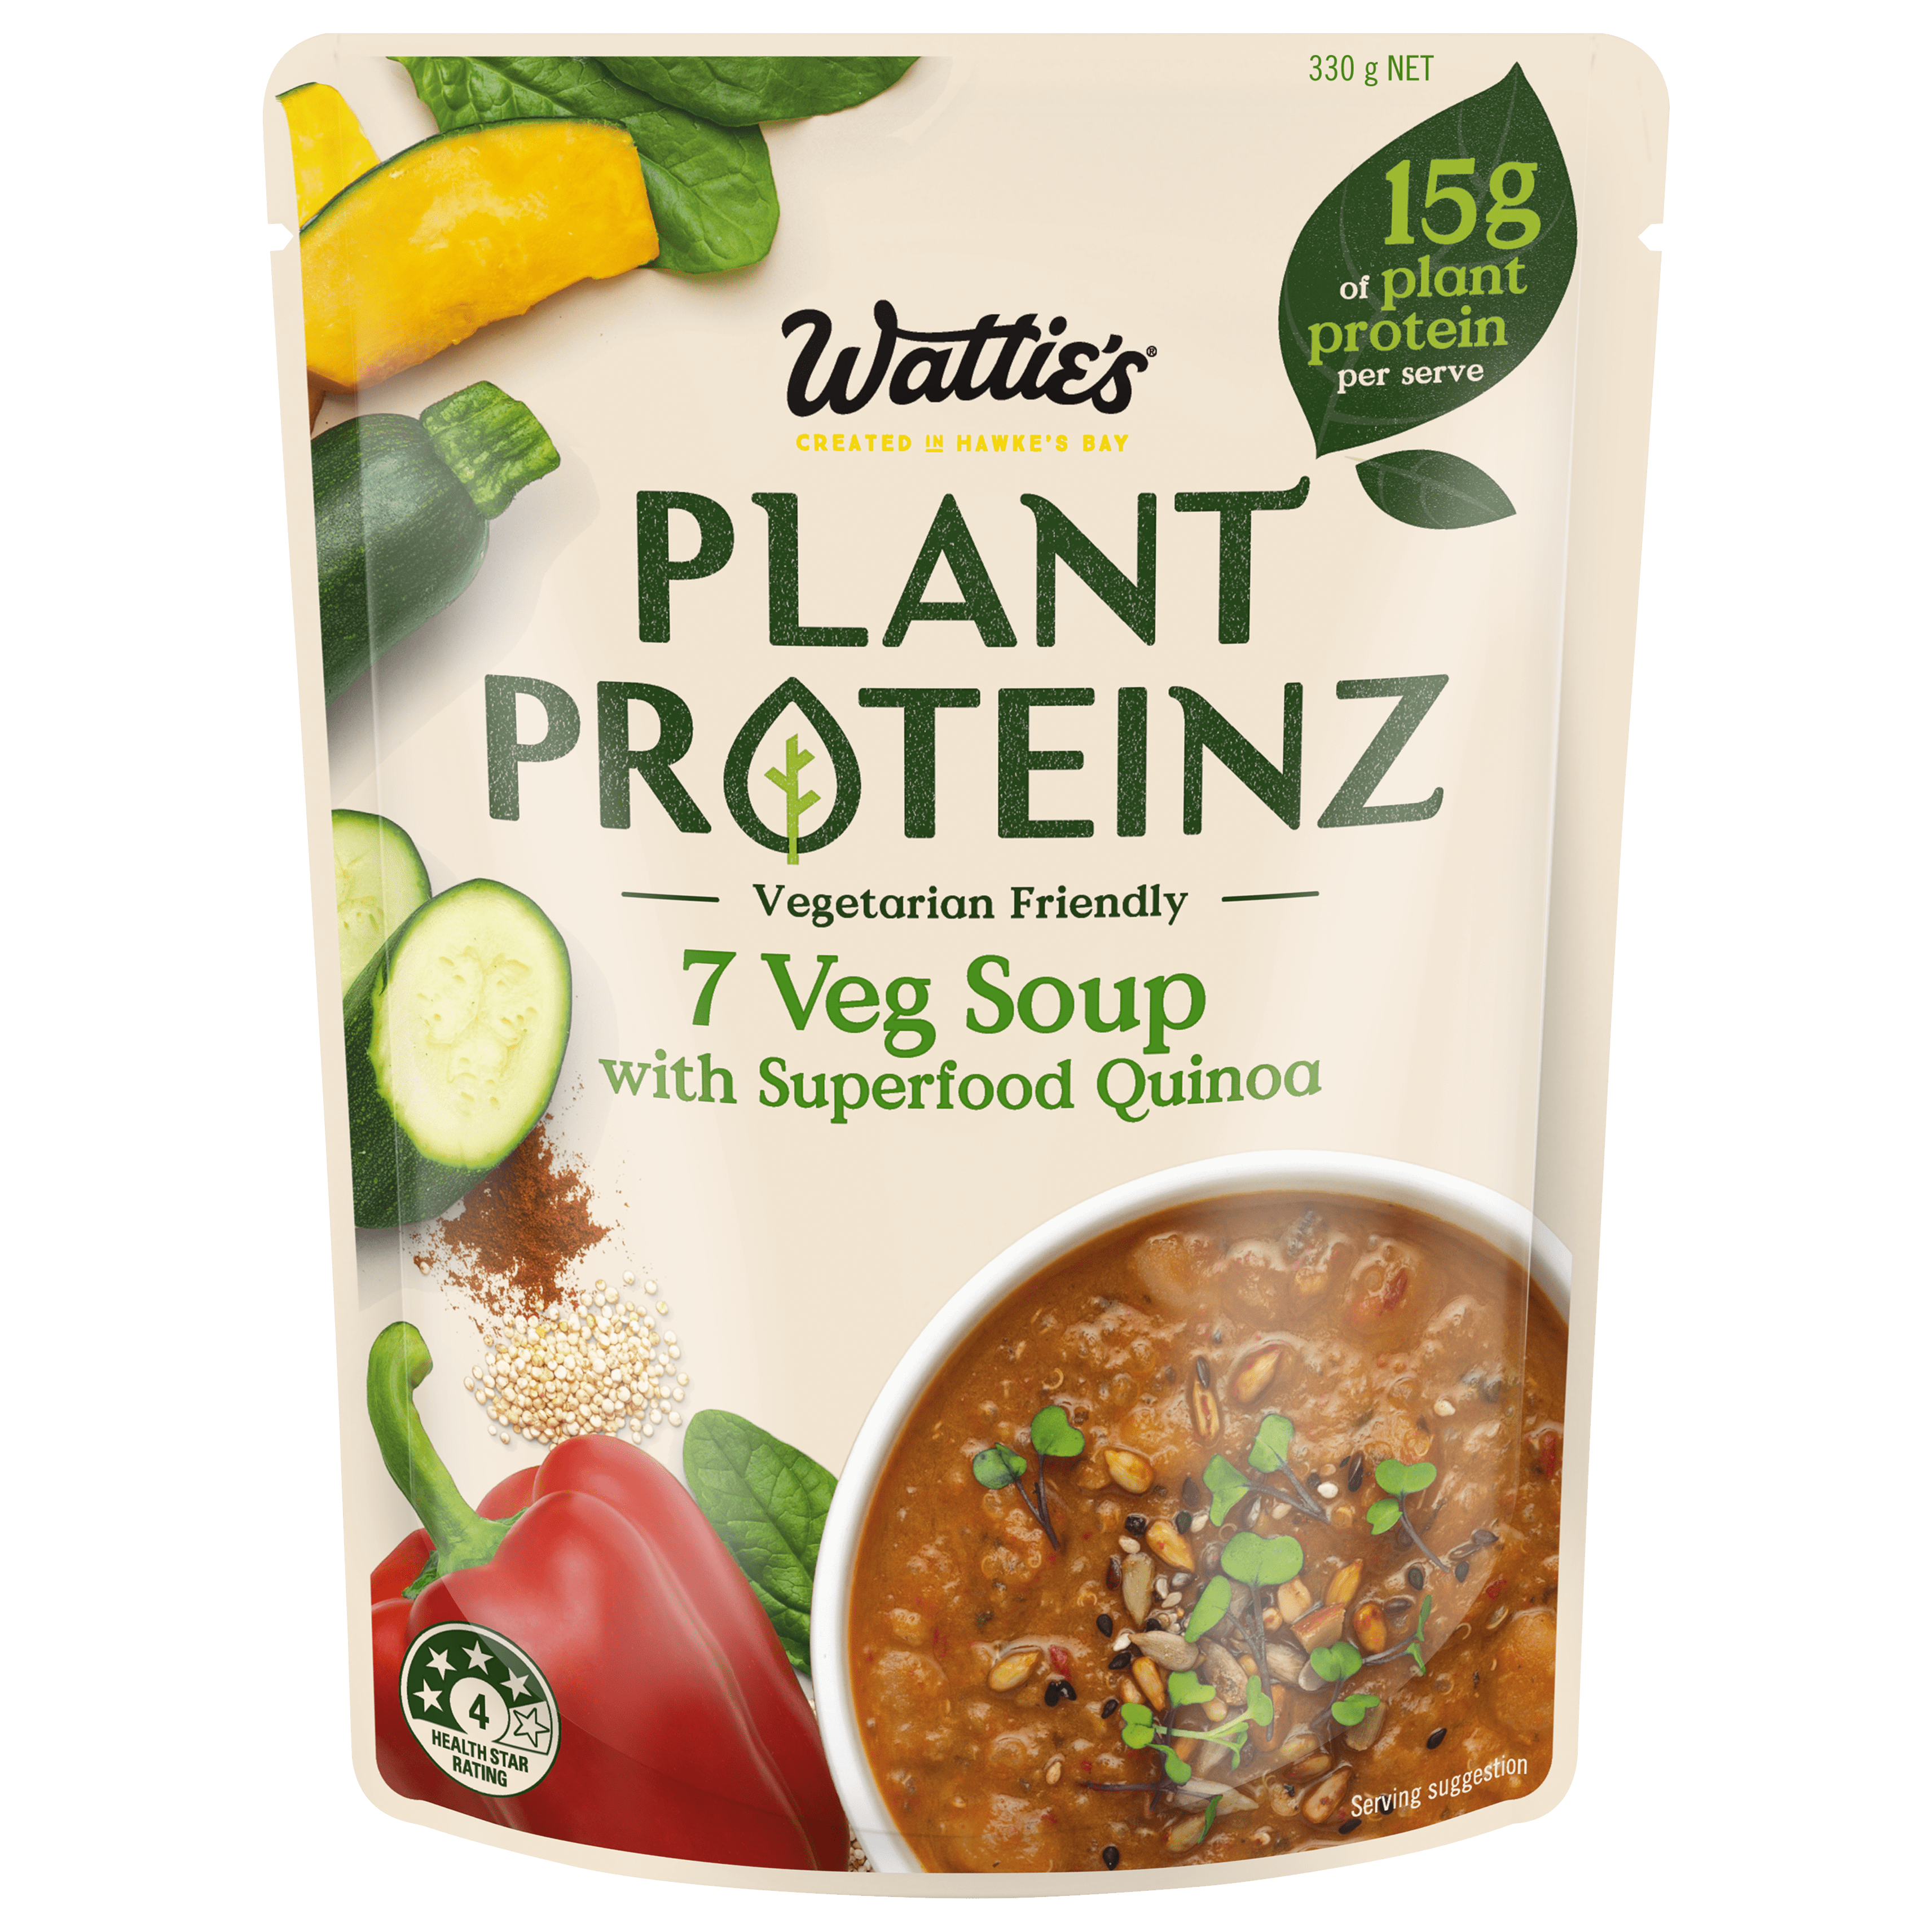 7 Veg Soup with Superfood Quinoa